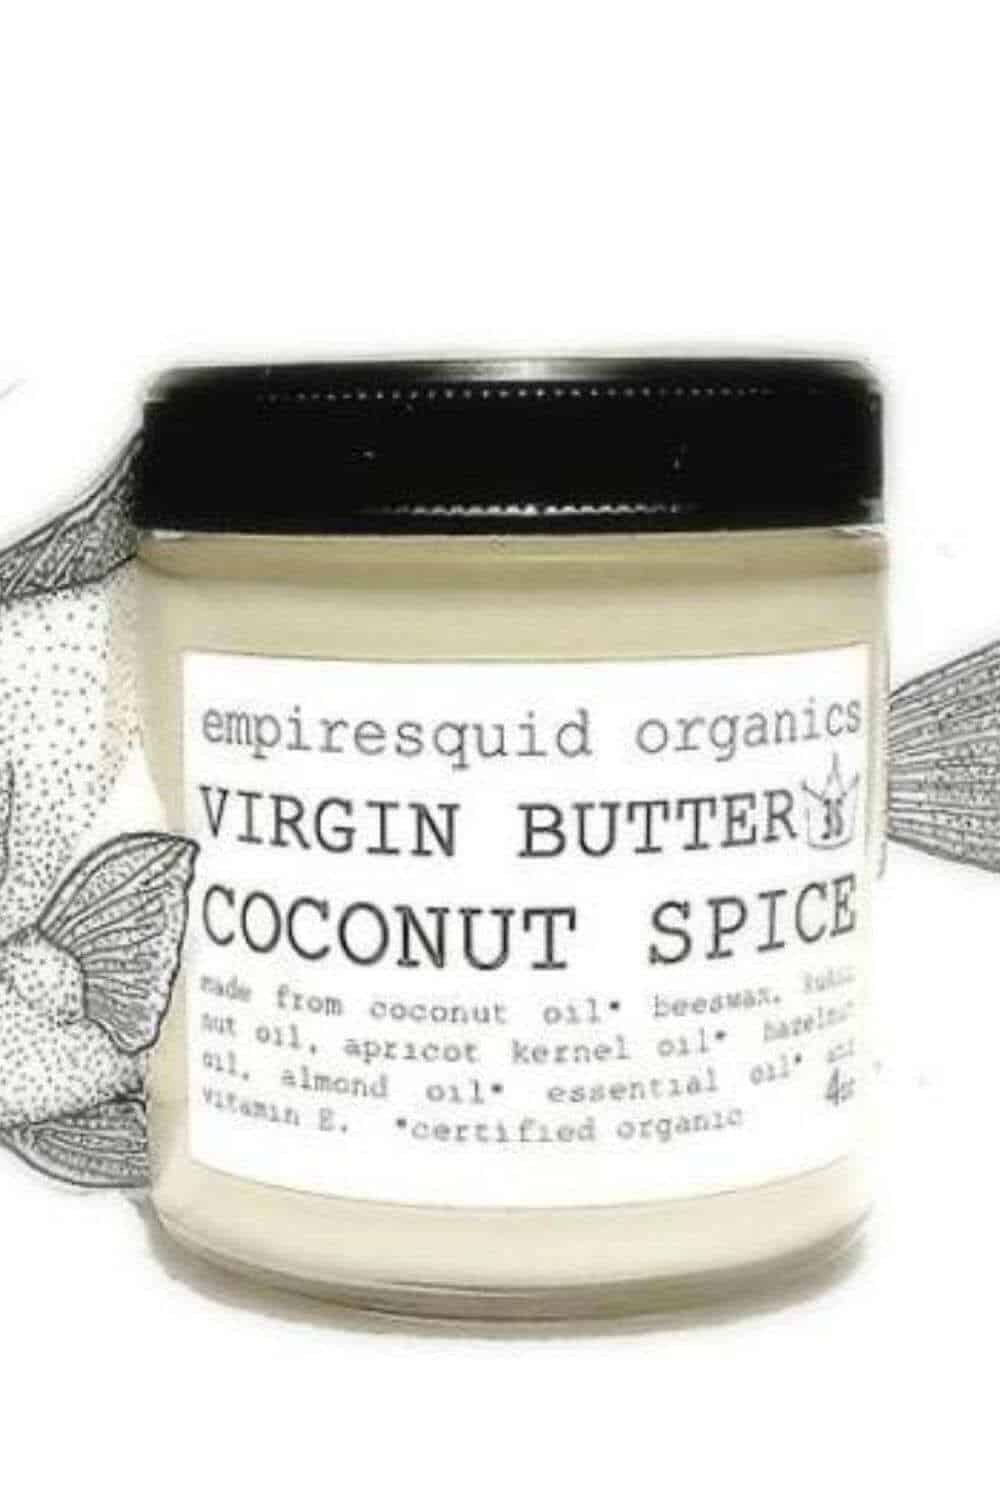 In the spirit of laying down the skinny on sustainable skincare, we've compiled a list of the best zero waste skin care brands we could find. Image by Empire Squid #zerowasteskincare #sustainablejungle